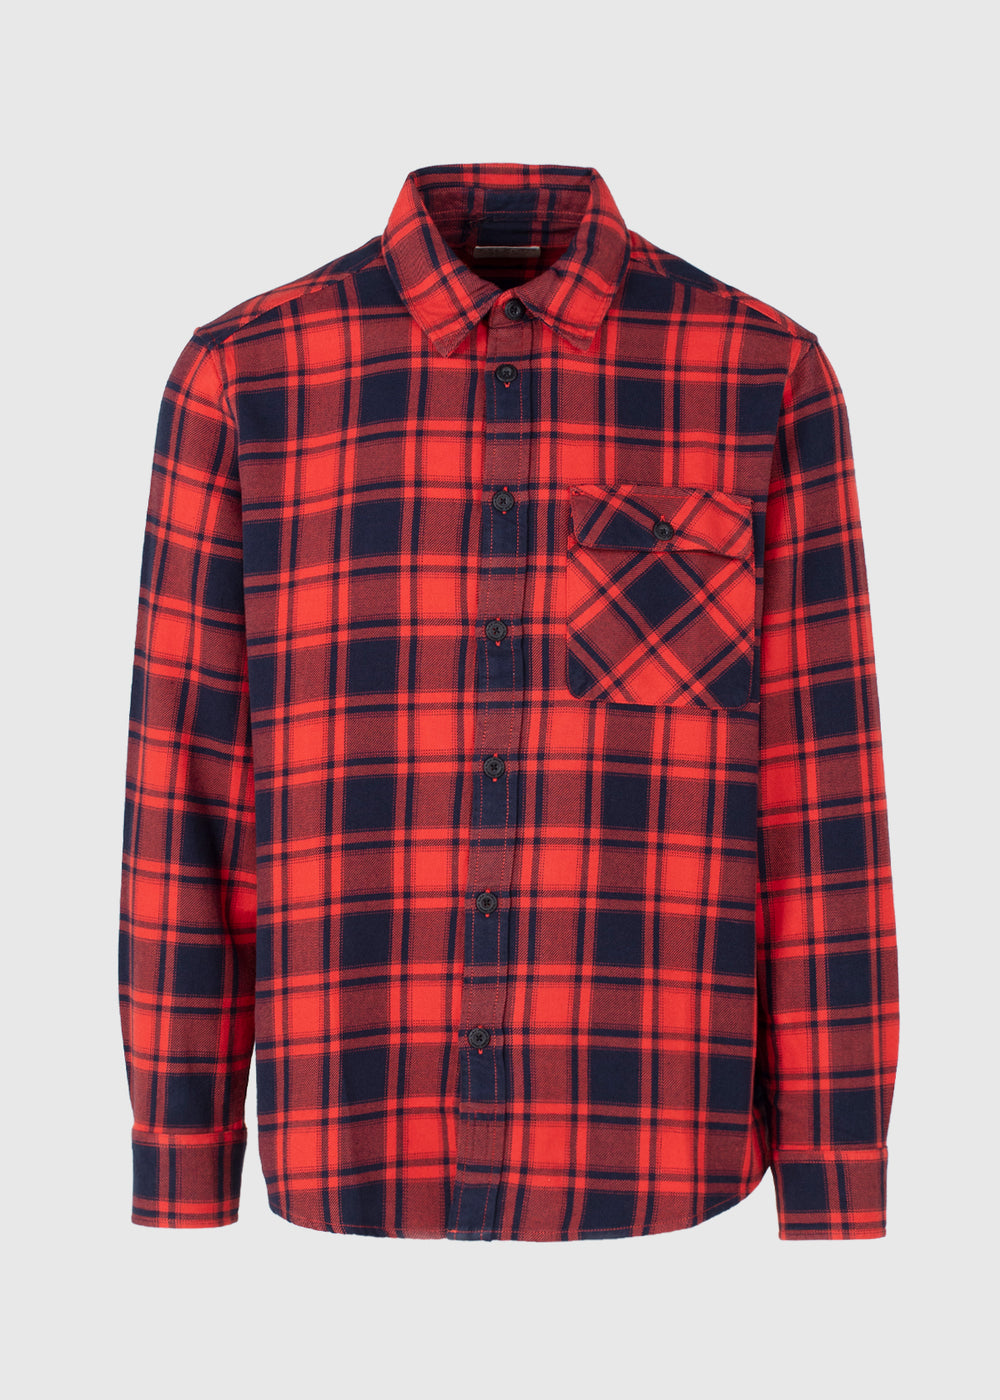 nudie-jeans-co-sten-flannel-shirt-140615-red-blk-1